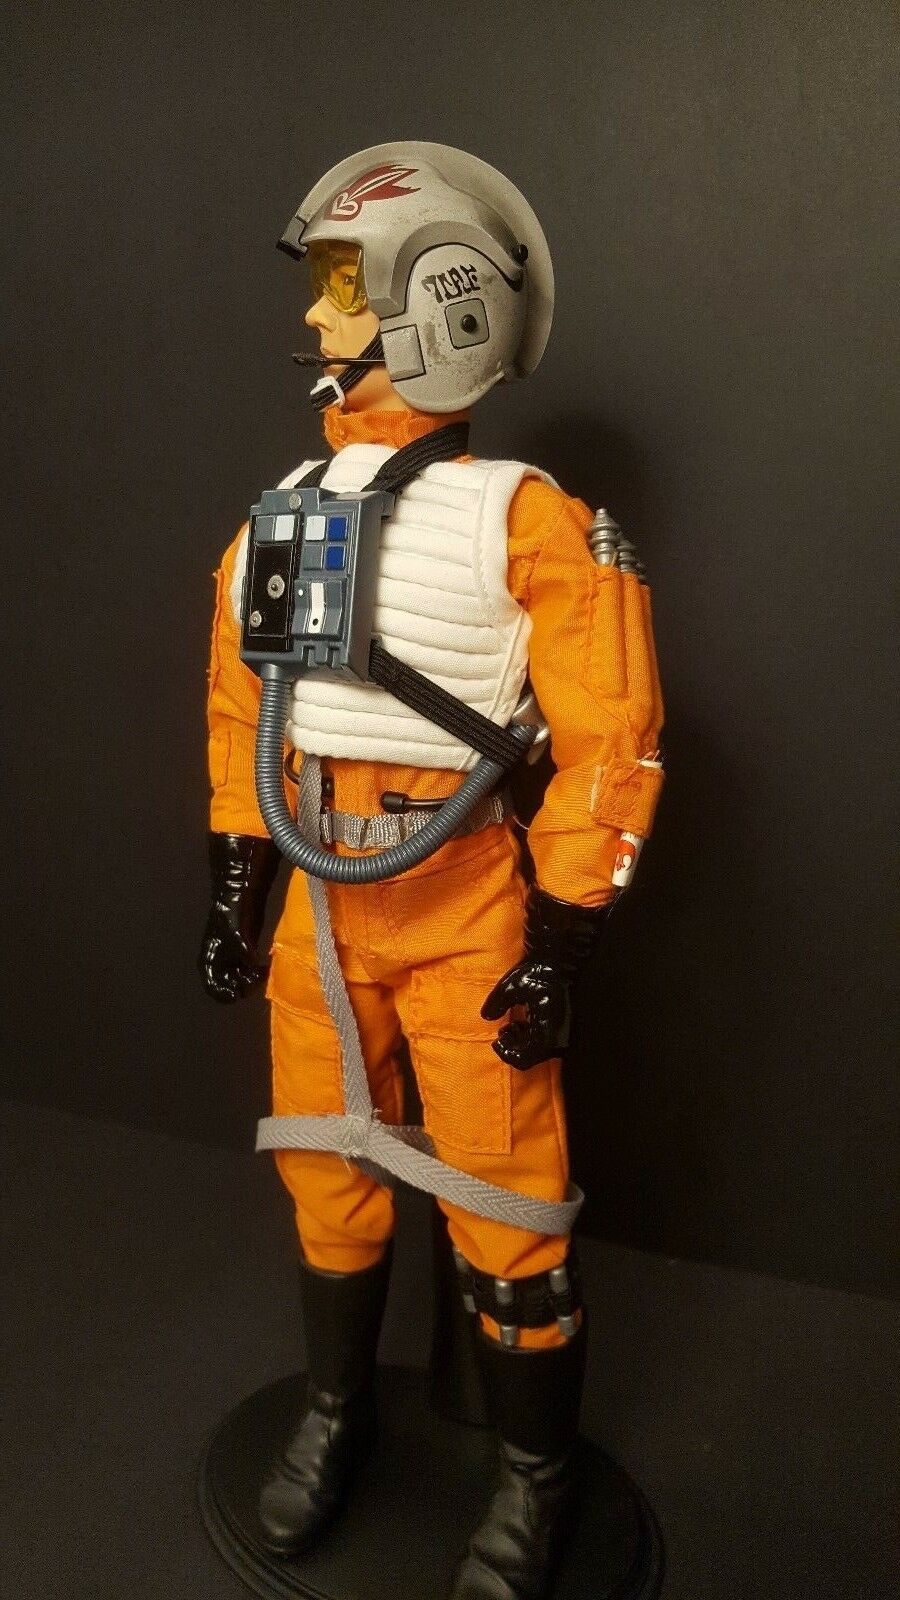 Star Wars, Rogue One X-Wing Pilot Figure 1/6 1/6 1/6 Scale, 12